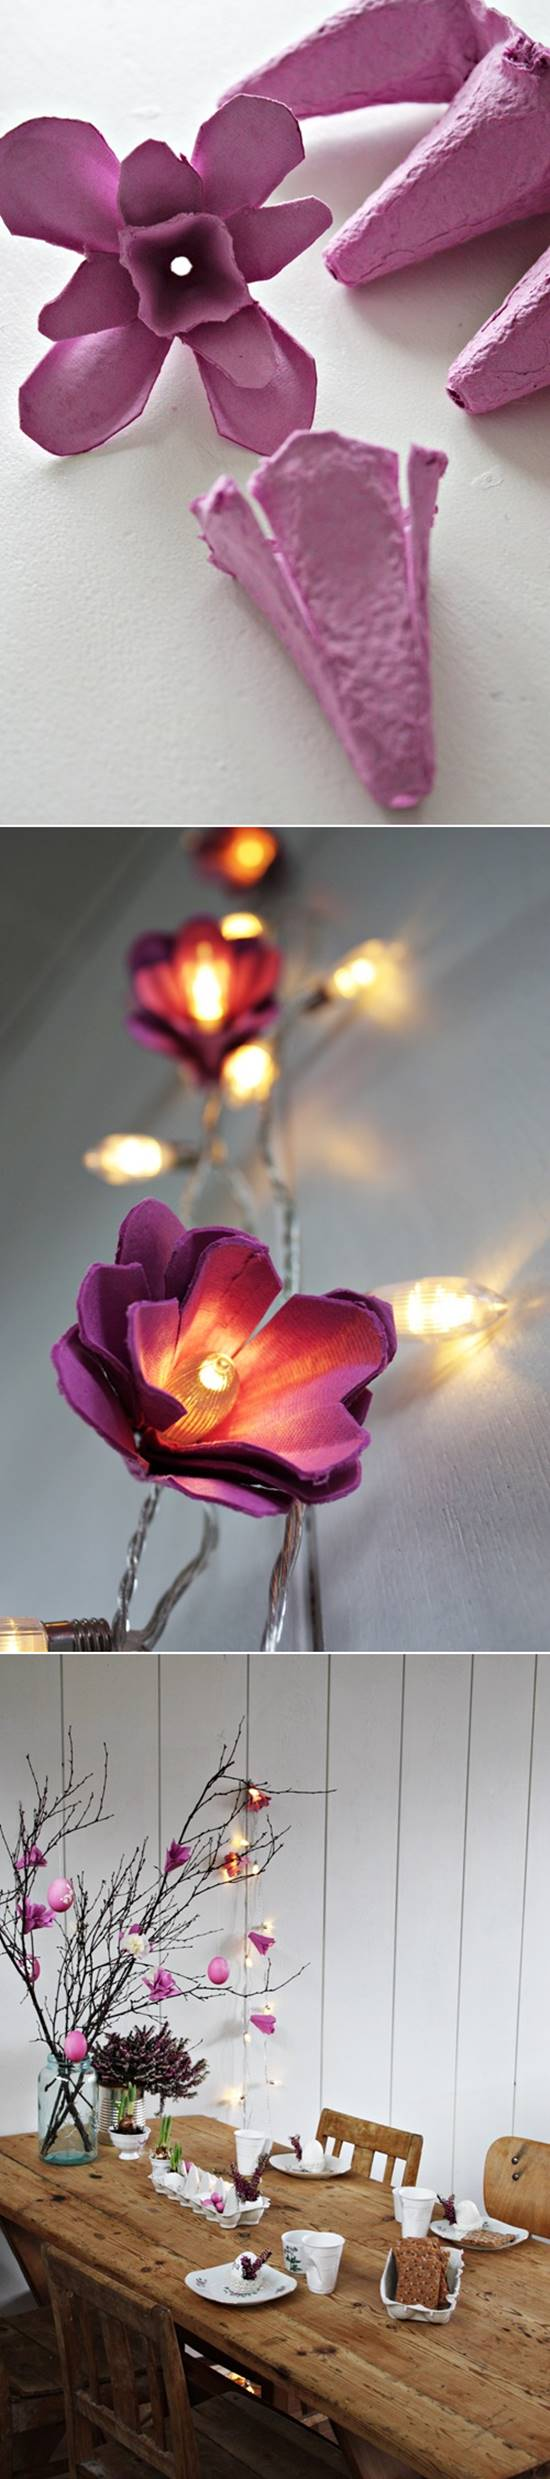 How to Make Beautiful Flower Lights from Egg Cartons